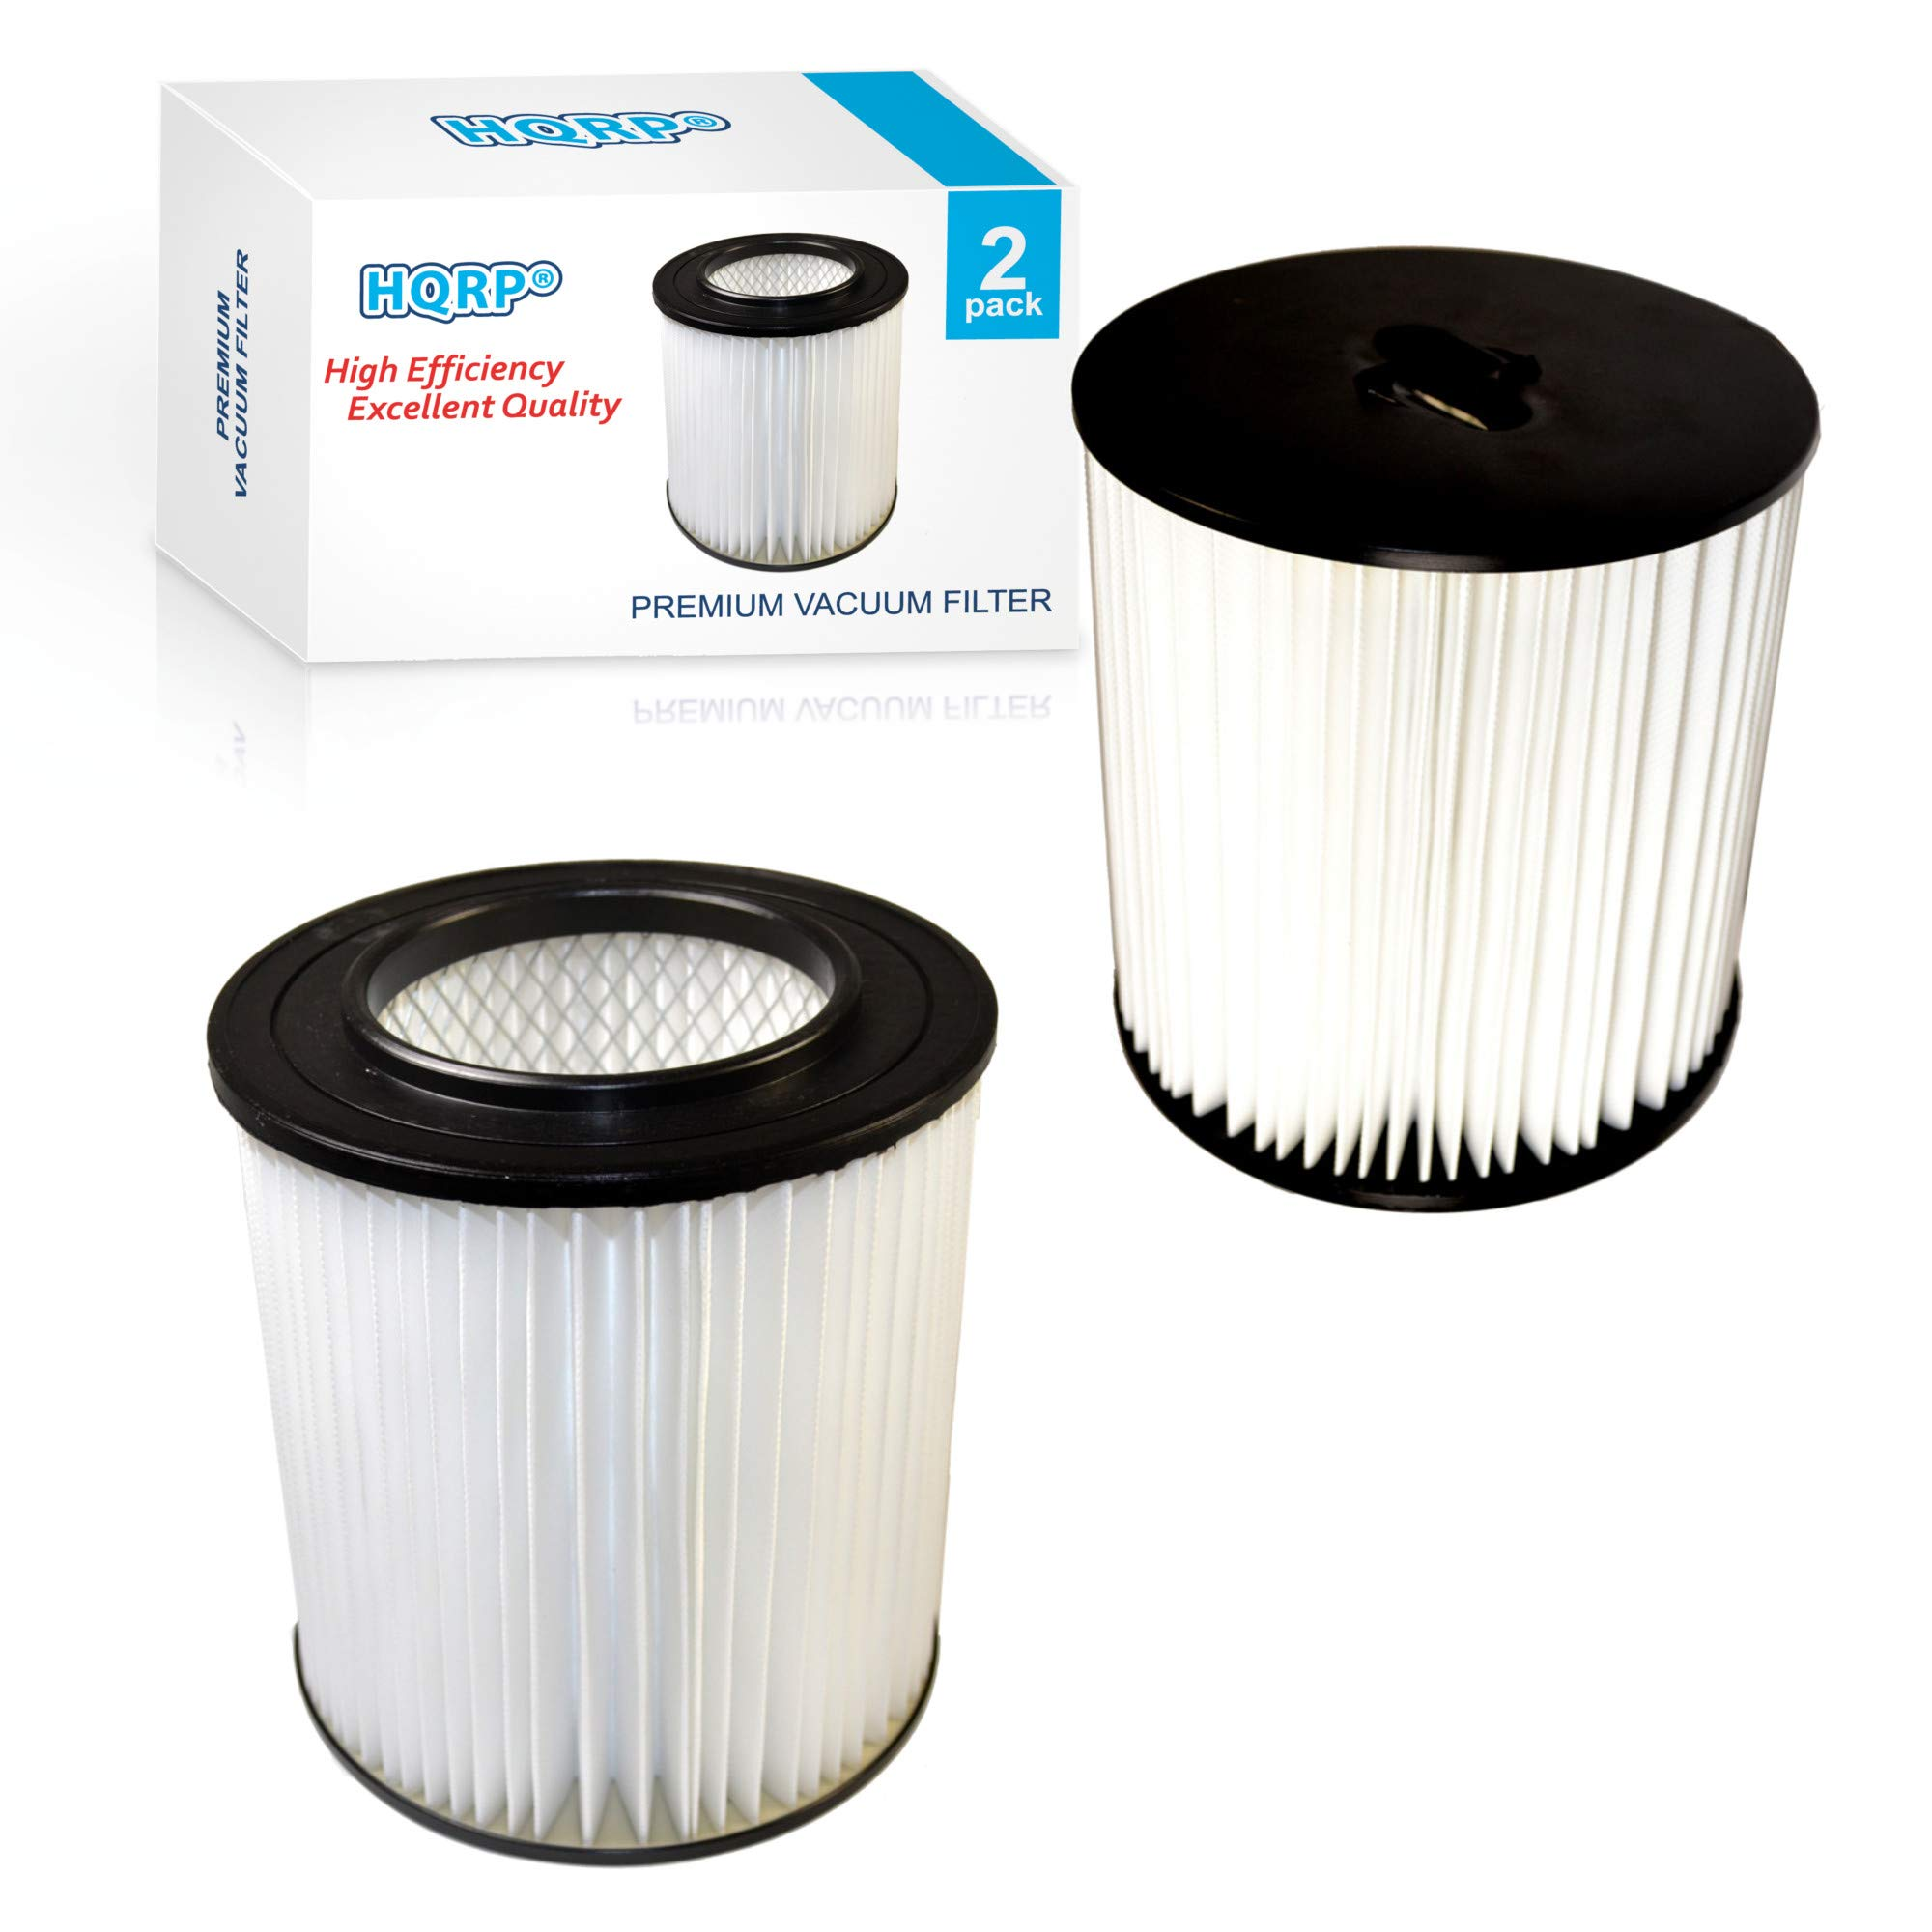 HQRP 2-Pack 7'' Filter for VACUFLO FC300, FC550, FC650, FC310, FC520, FC530, FC540, FC610, FC620, FC670 H-P Central Vacuum Systems, 8106-01 Replacement